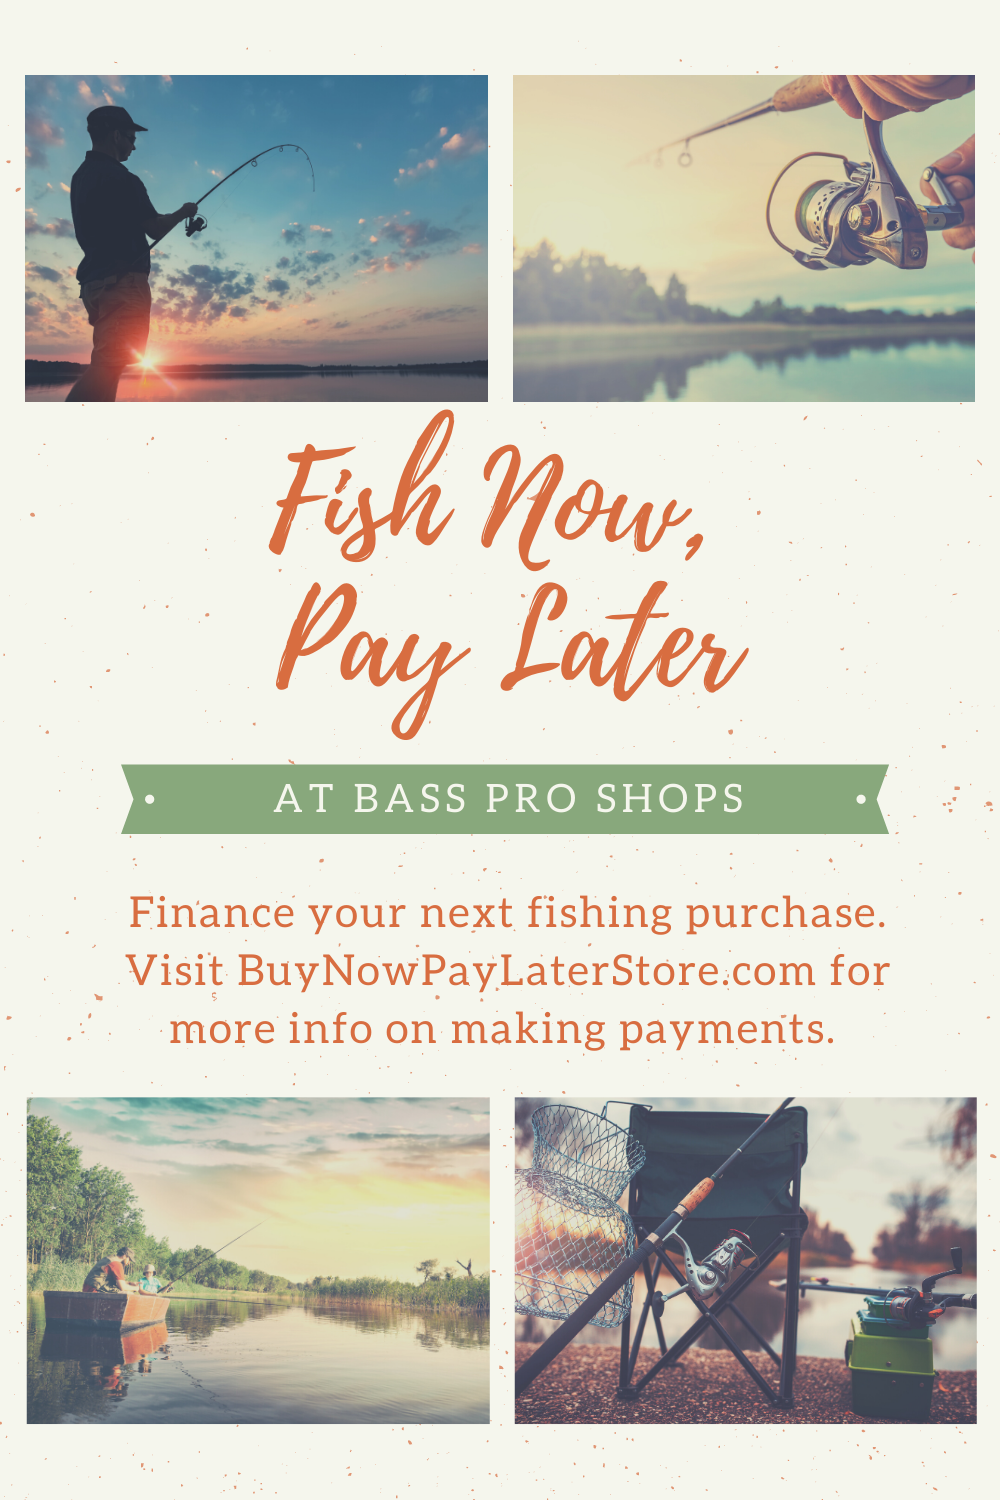 Finance your next fishing purchase. Visit BuyNowPayLaterStore.com for more info on making payments.